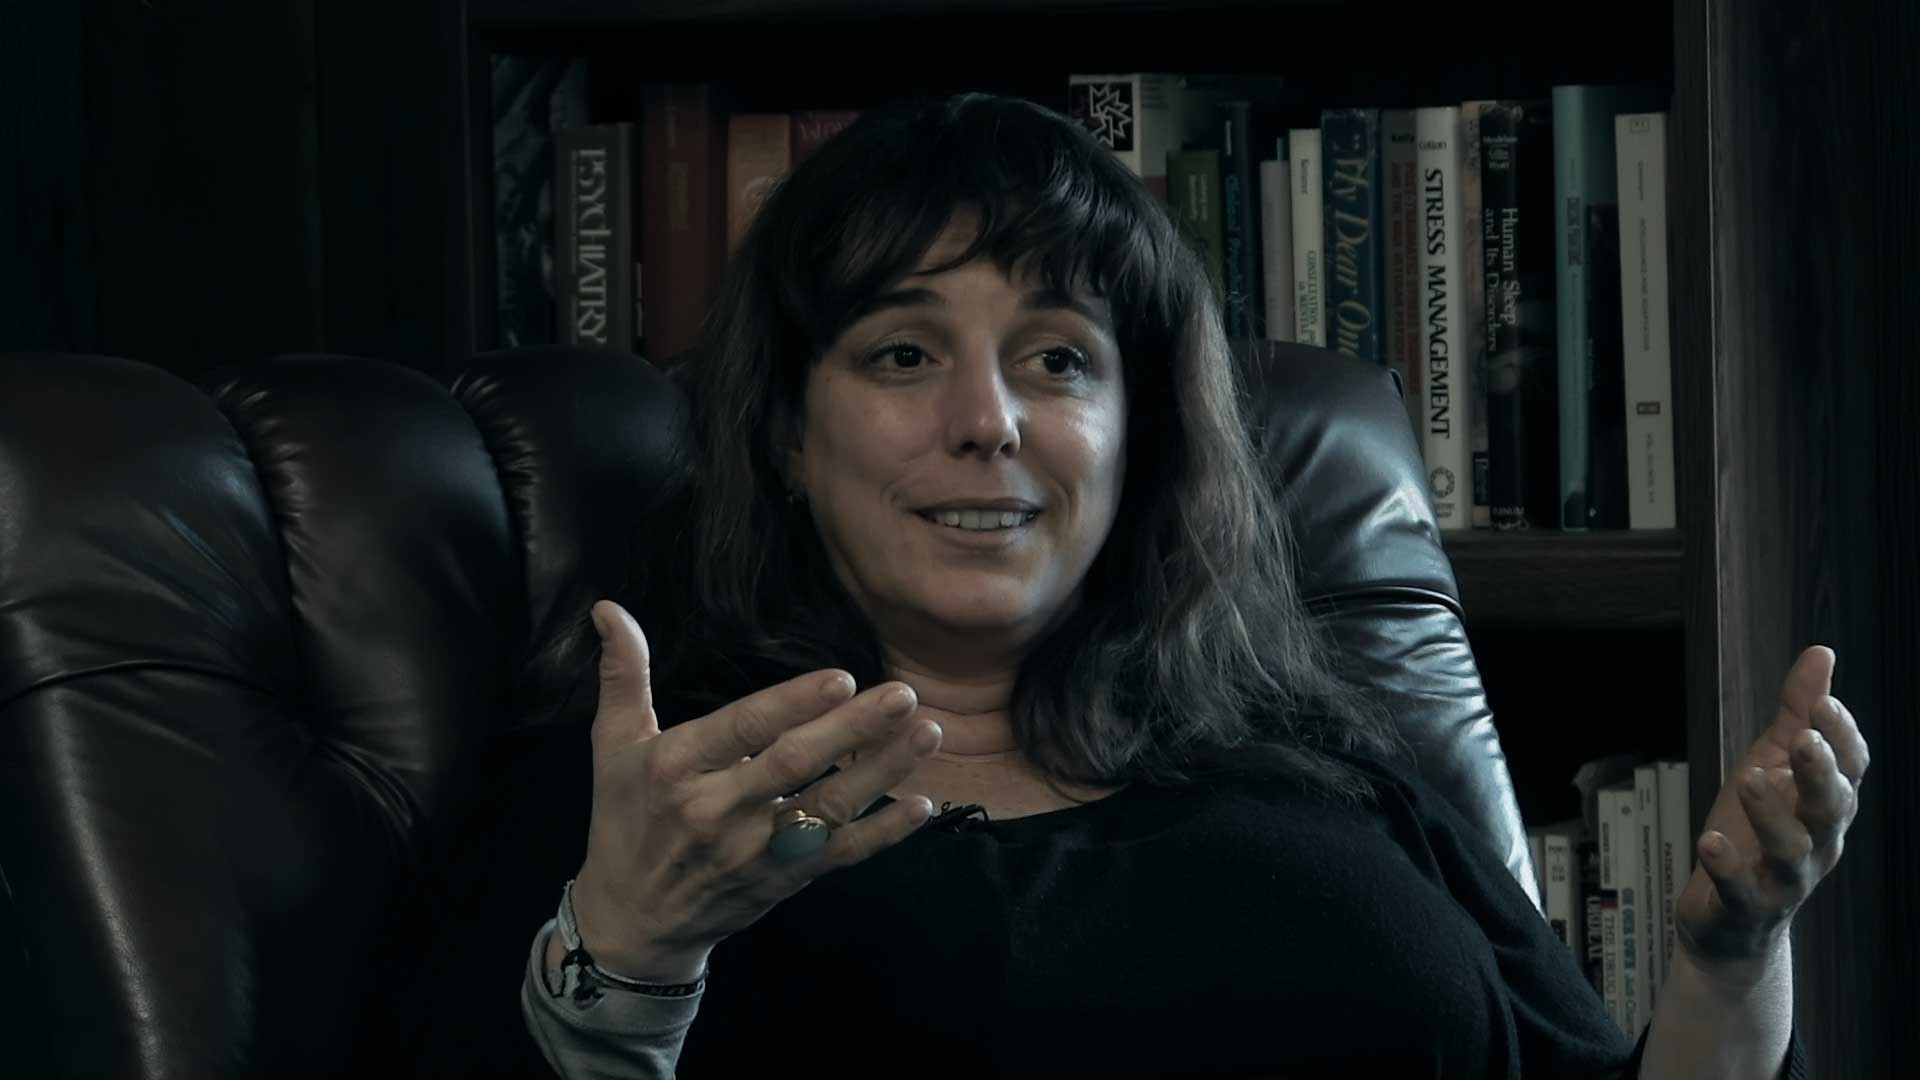 Tania Bruguera in Tania Libre. 2016. USA. Directed by Lynn Hershman Leeson. Courtesy of the filmmaker